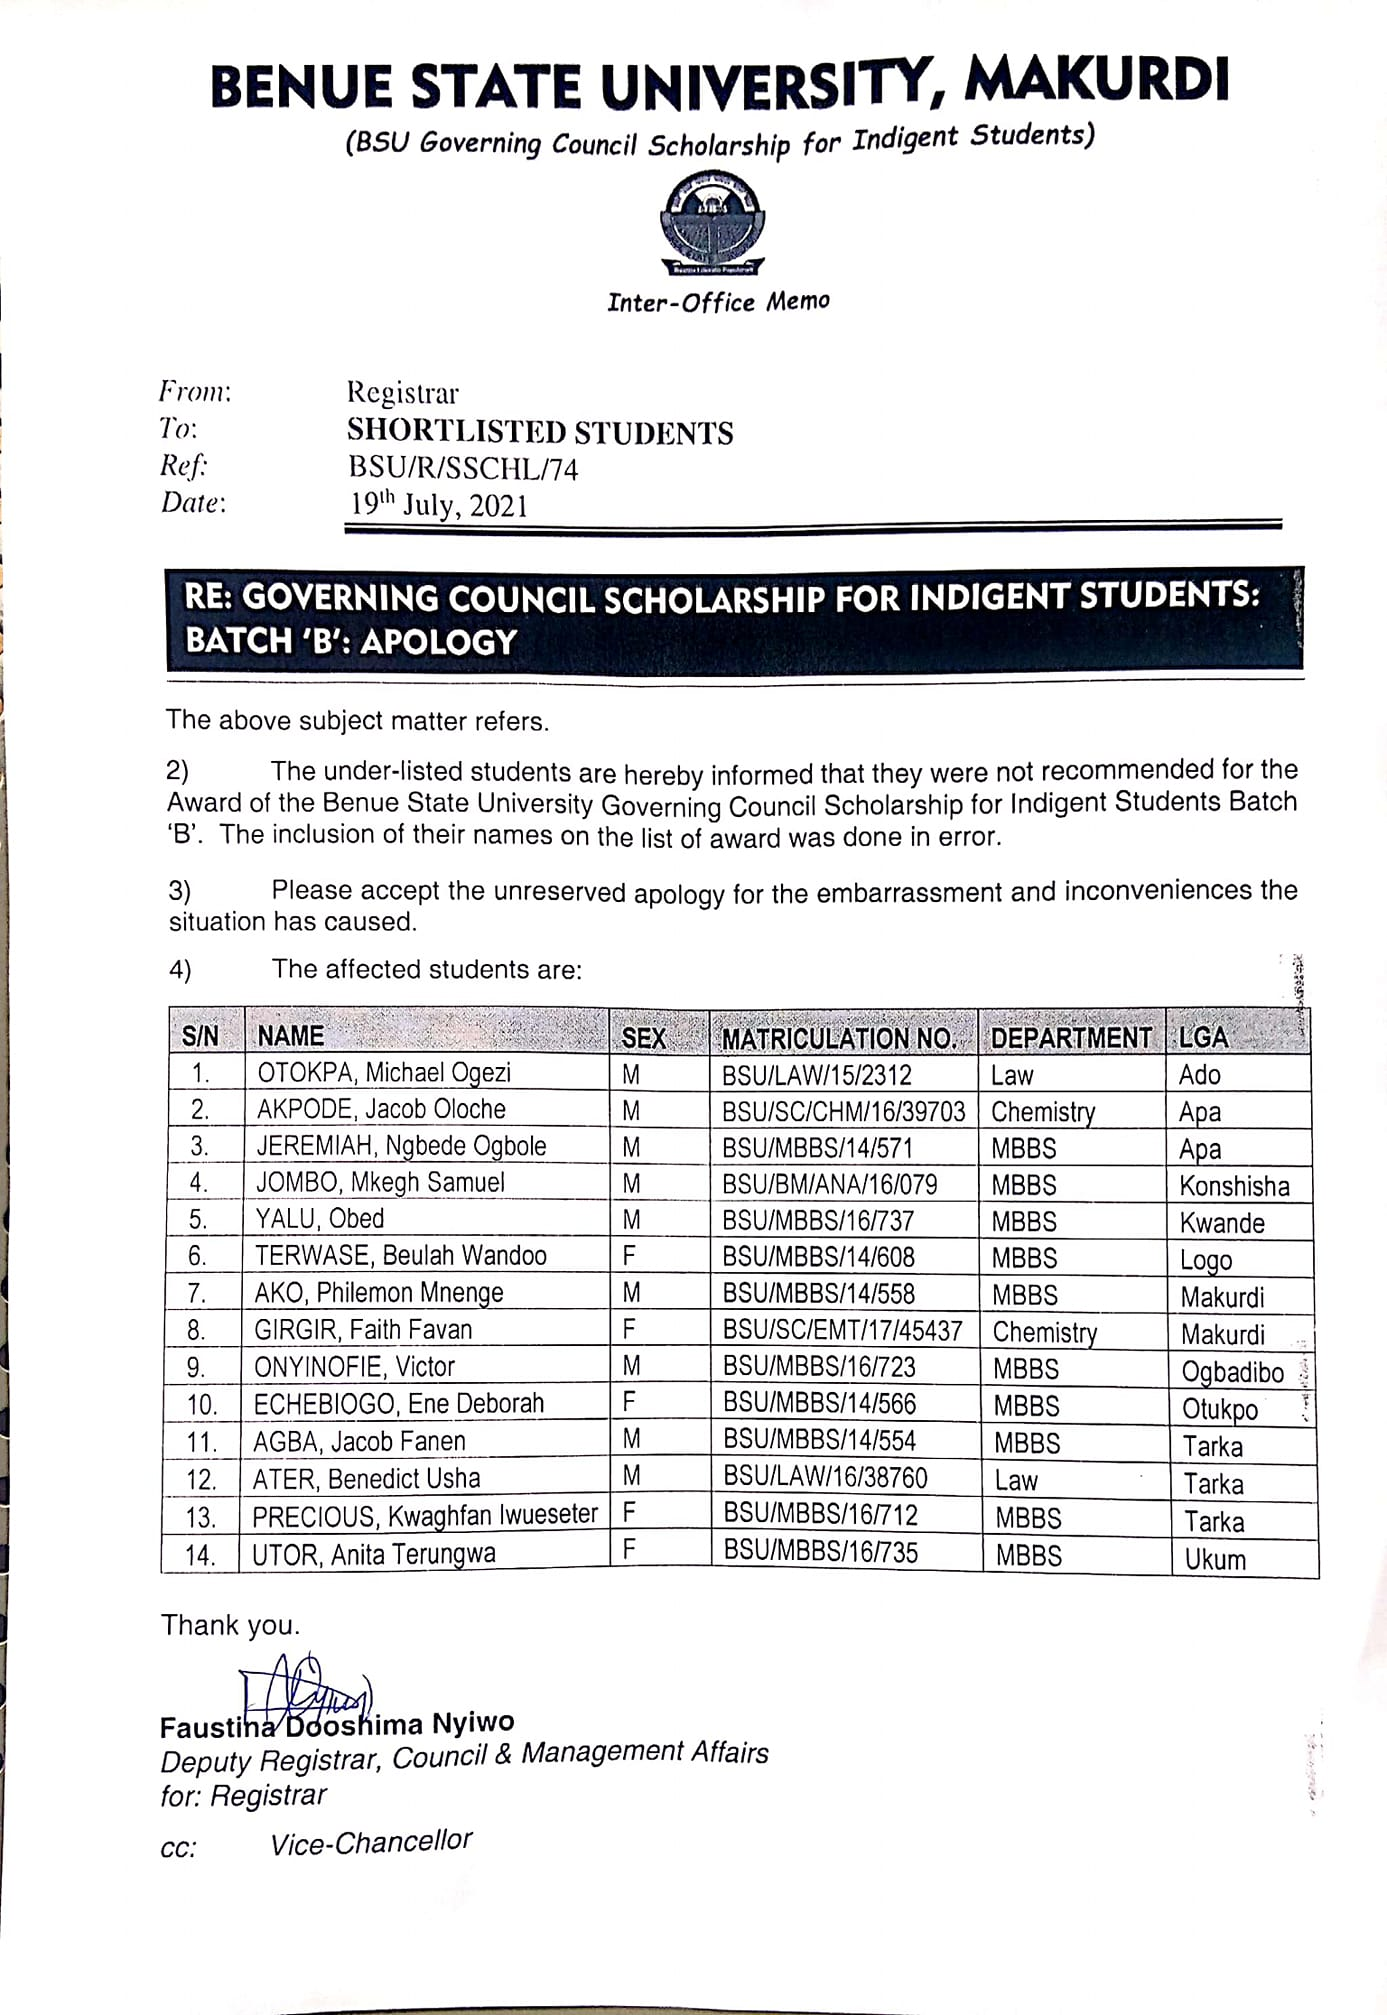 BSU Governing Council Scholarship Successful Candidates 2019/2020